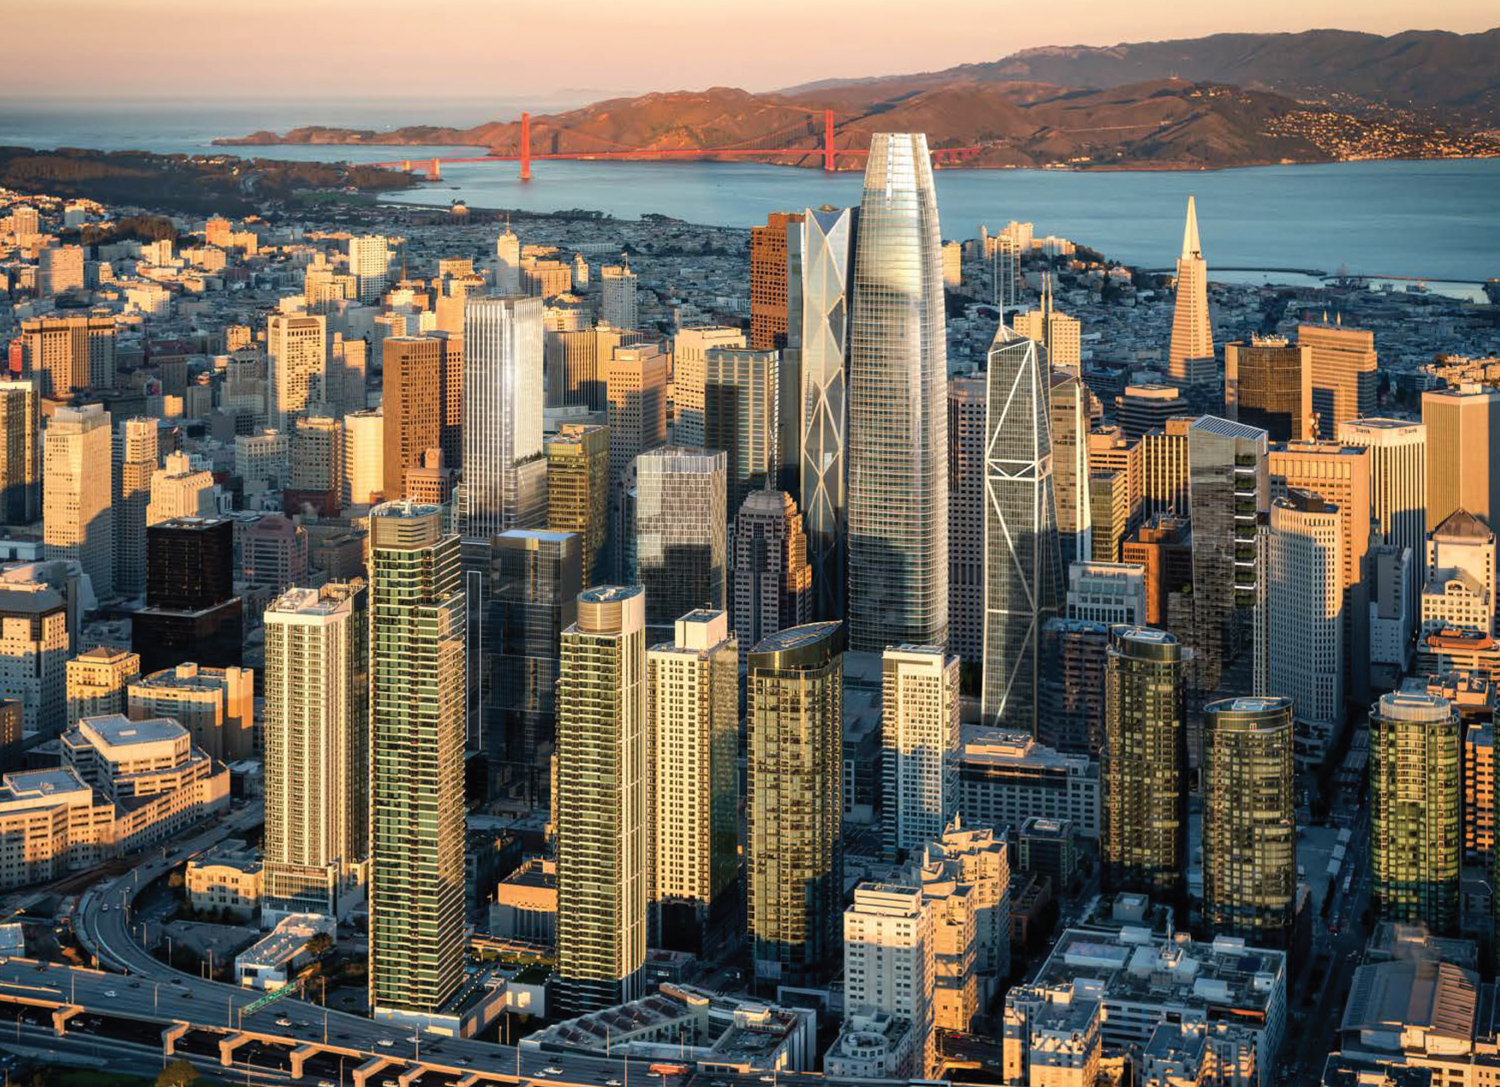 550 Howard Street seen below the left Golden Gate Bridge tower, with the the proposed Oceanwide Center seen behind the Salesforce Building, rendering by SteelBlue